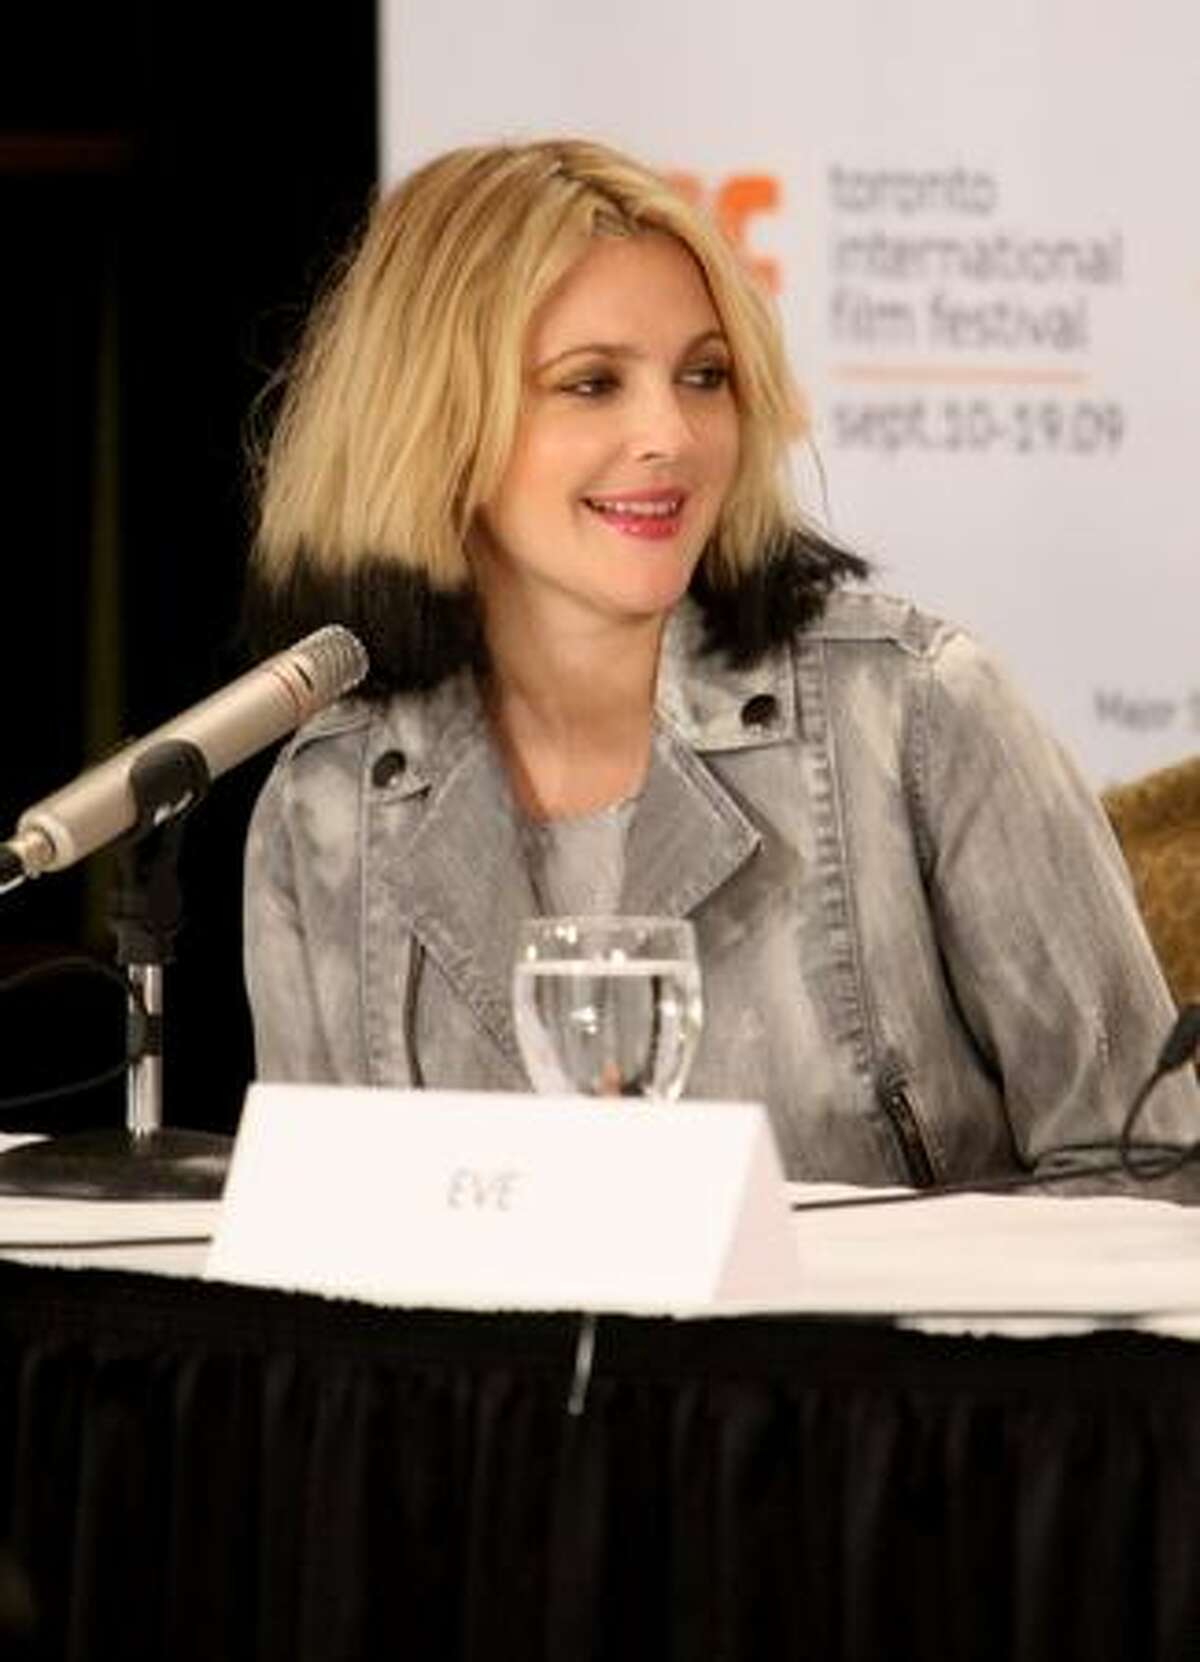 """Director Drew Barrymore speaks onstage at the """"Whip It"""" press conference held at the Four Seasons Hotel in Toronto, Canada."""